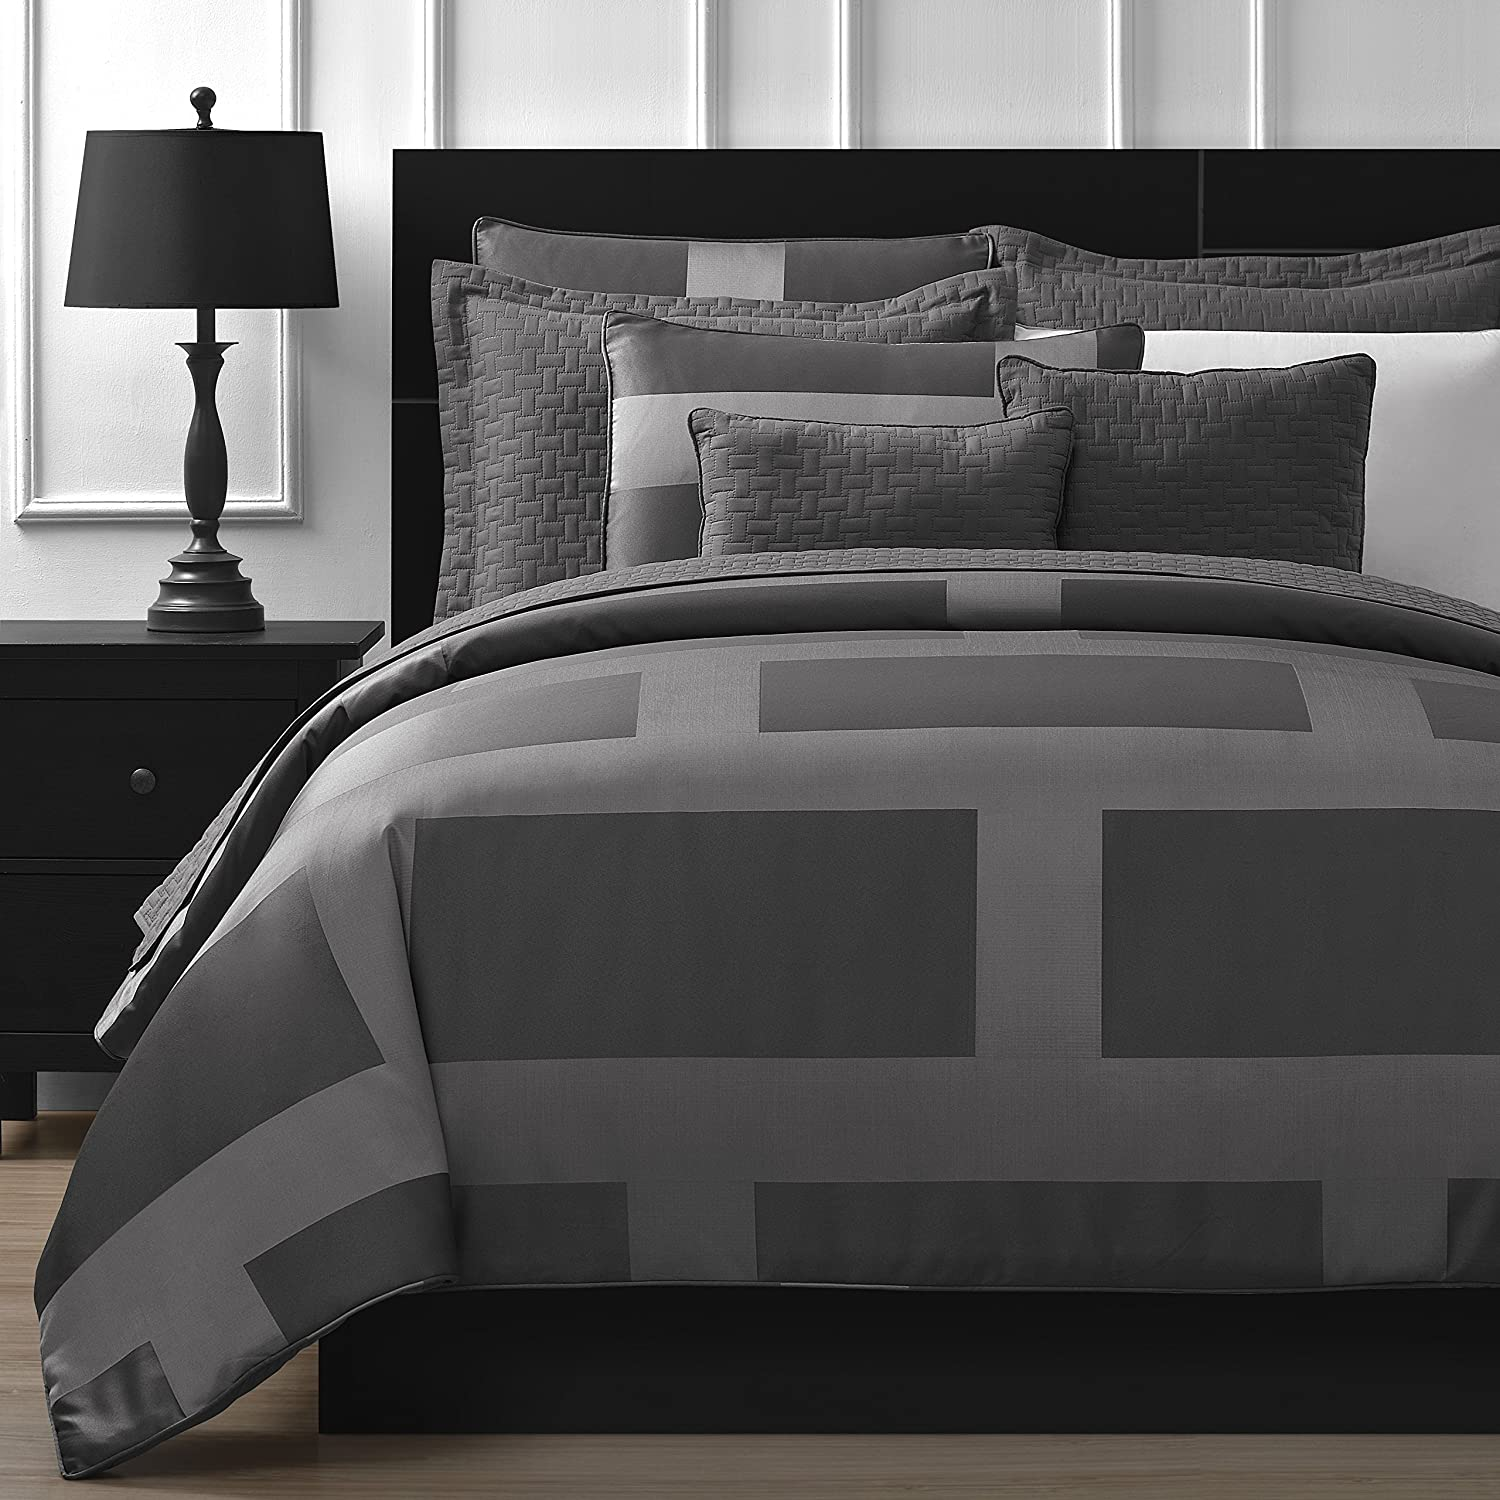 Comfy Bedding Frame Jacquard Microfiber Queen 5-piece Comforter Set, Gray